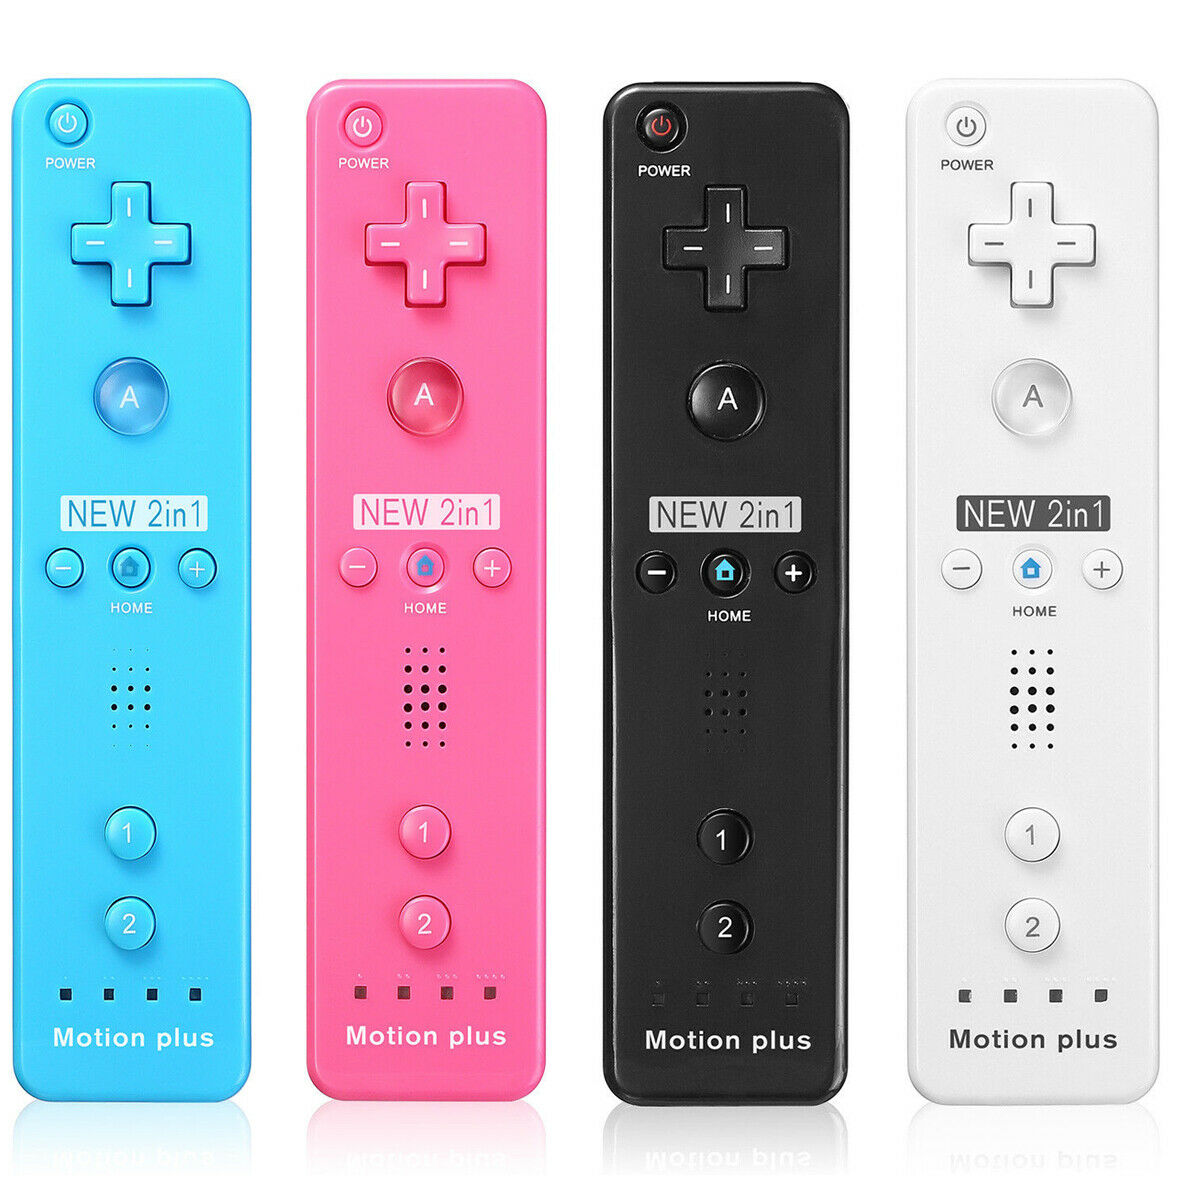 Built in Motion Plus Remote Controller + Case for Nintendo Wii / Wii U